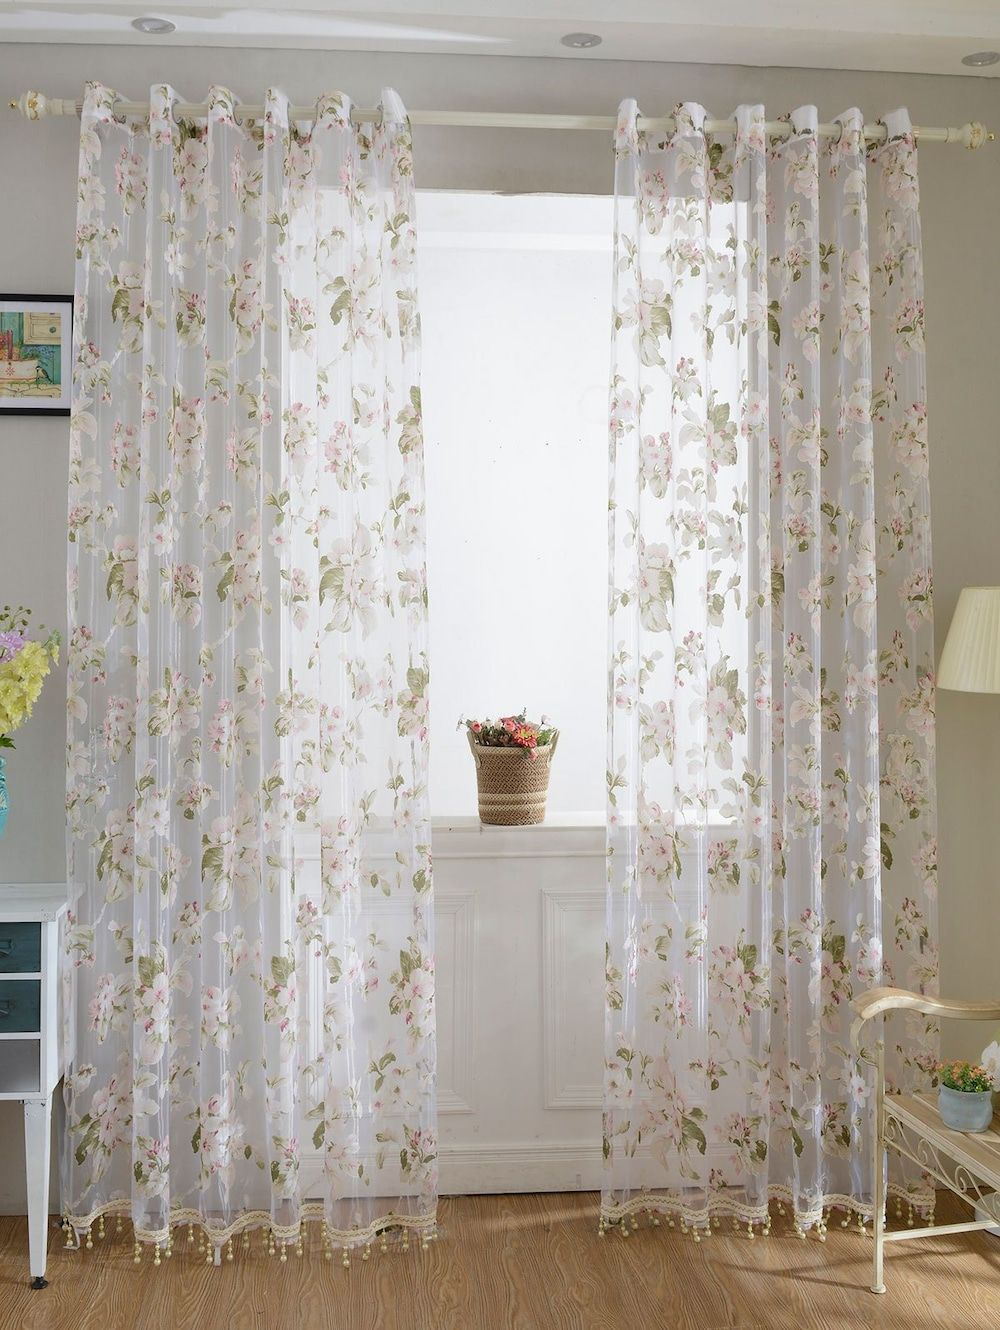 Flower Sheer Fabric Tulle Curtain With Beads Pendant Curtains Living Room Curtains Sheer Curtain Panels